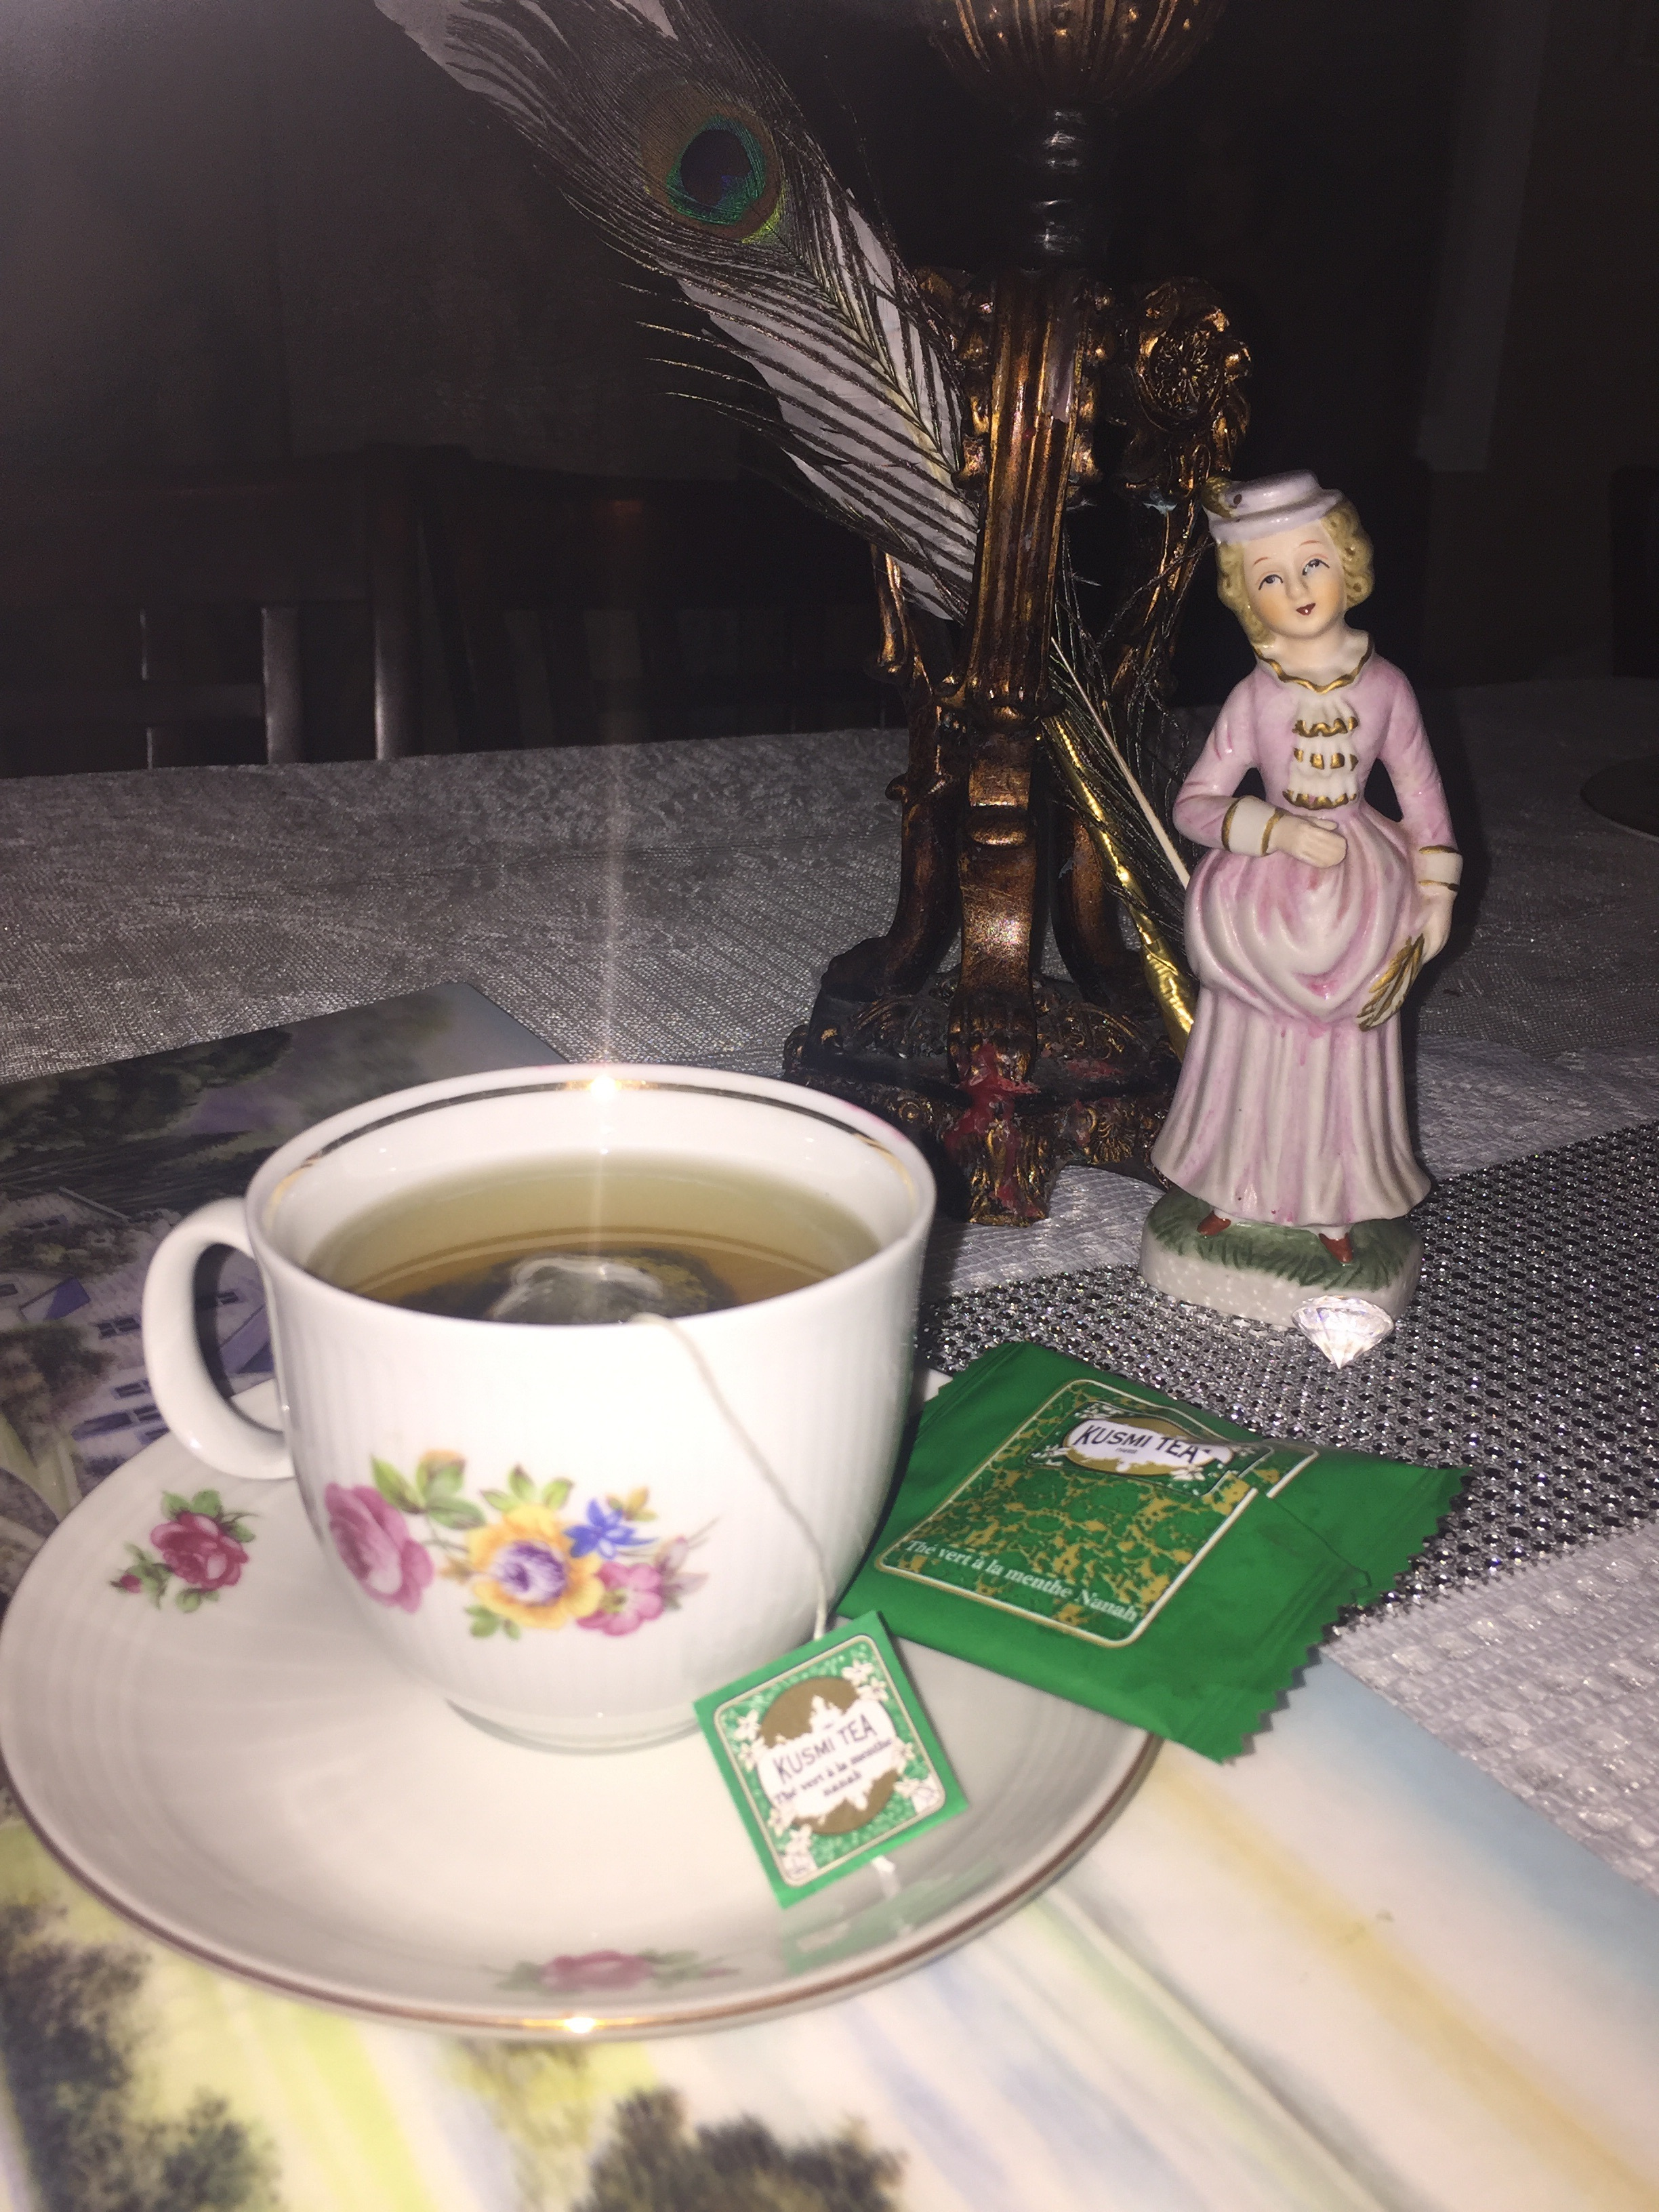 Fine china, Kusmi Parisean tea and Peacock feathers to signify Royalty, elegance and intellegance. (Research peacock significance for more!)